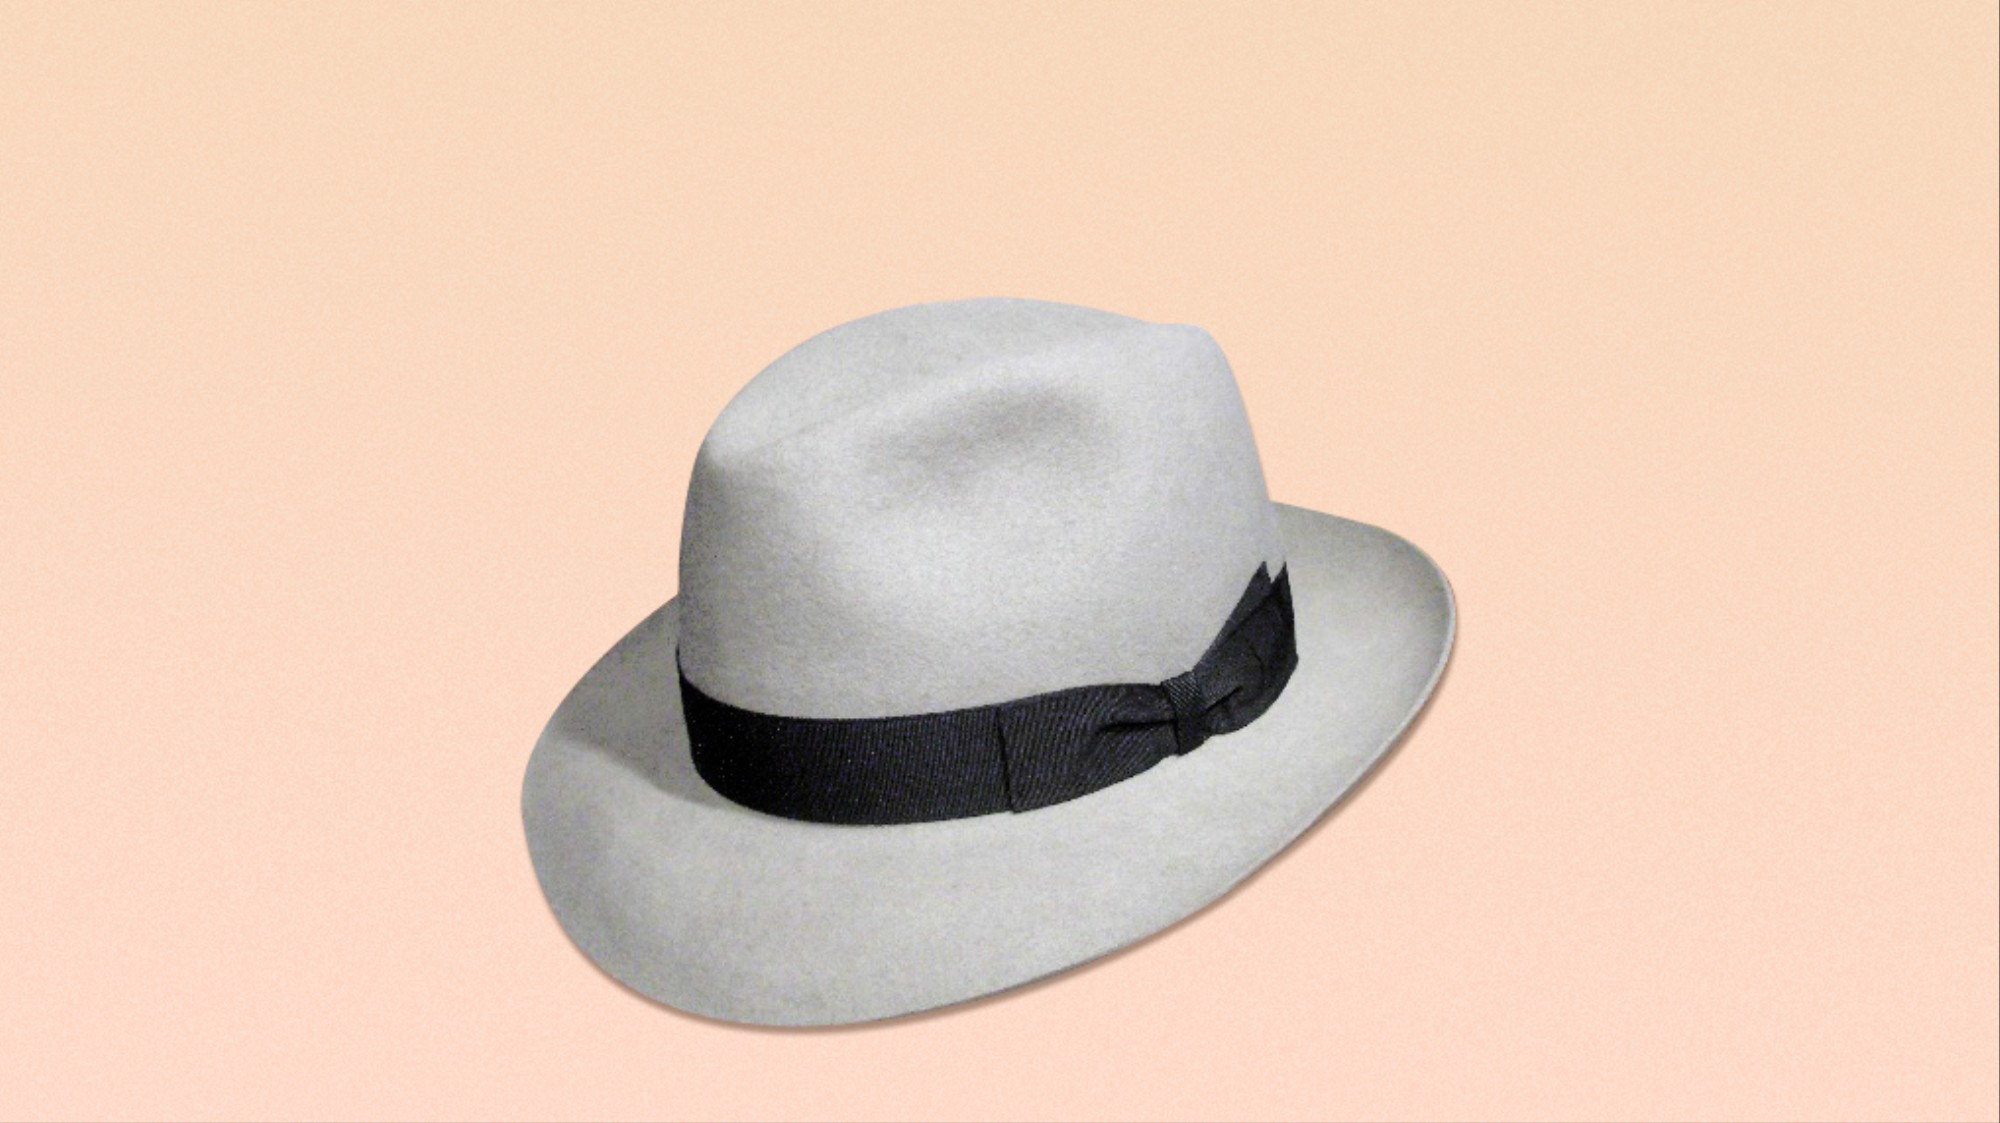 592d552196d99 The History of the Fedora - VICE